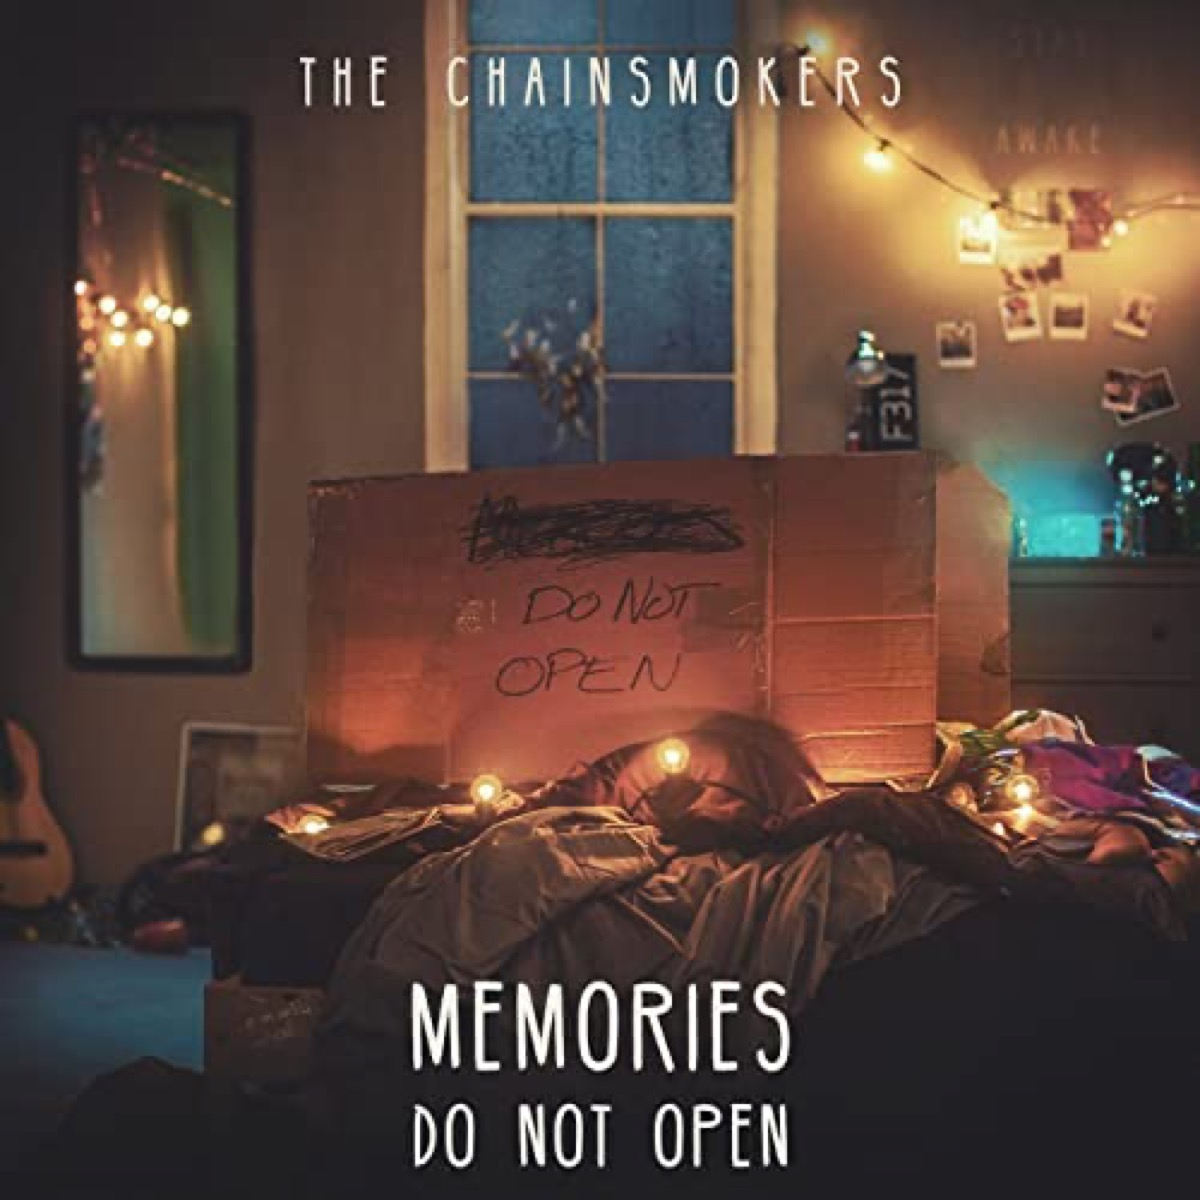 """The album cover of """"Memories...Do Not Open"""" by The Chainsmokers"""